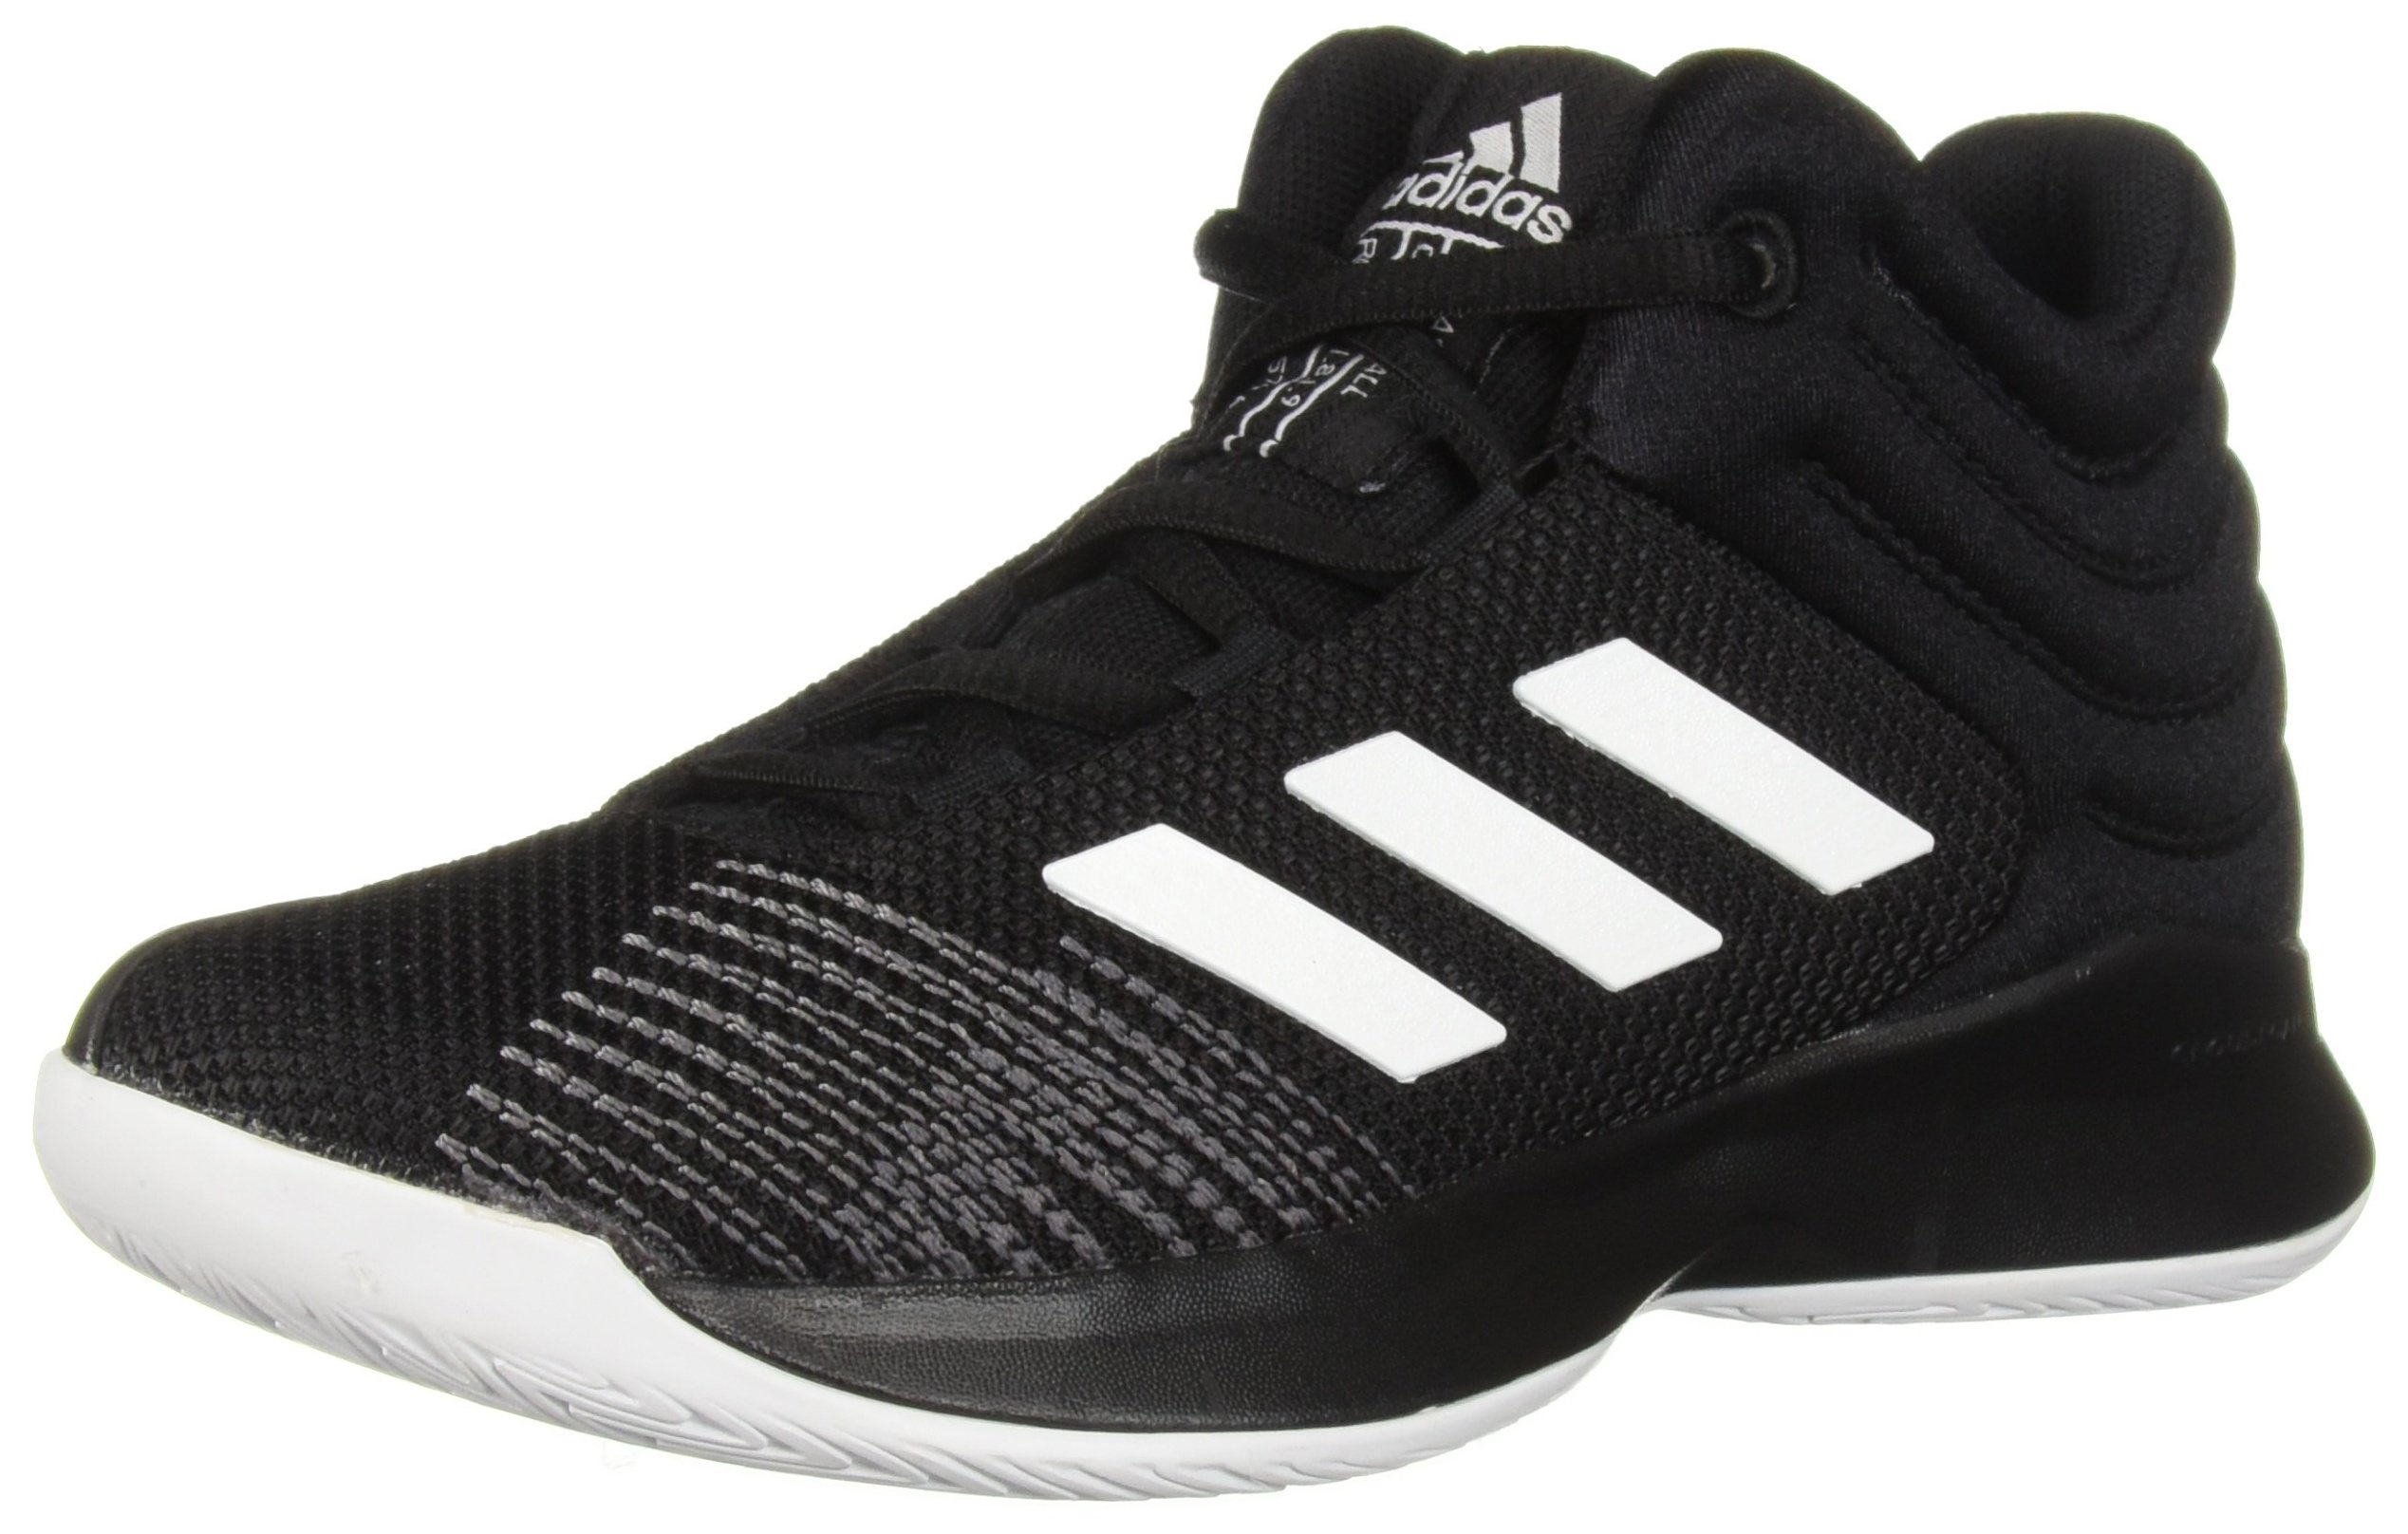 adidas Unisex Pro Spark 2018 Basketball Shoe, Black/White/Grey, 3 M US Little Kid